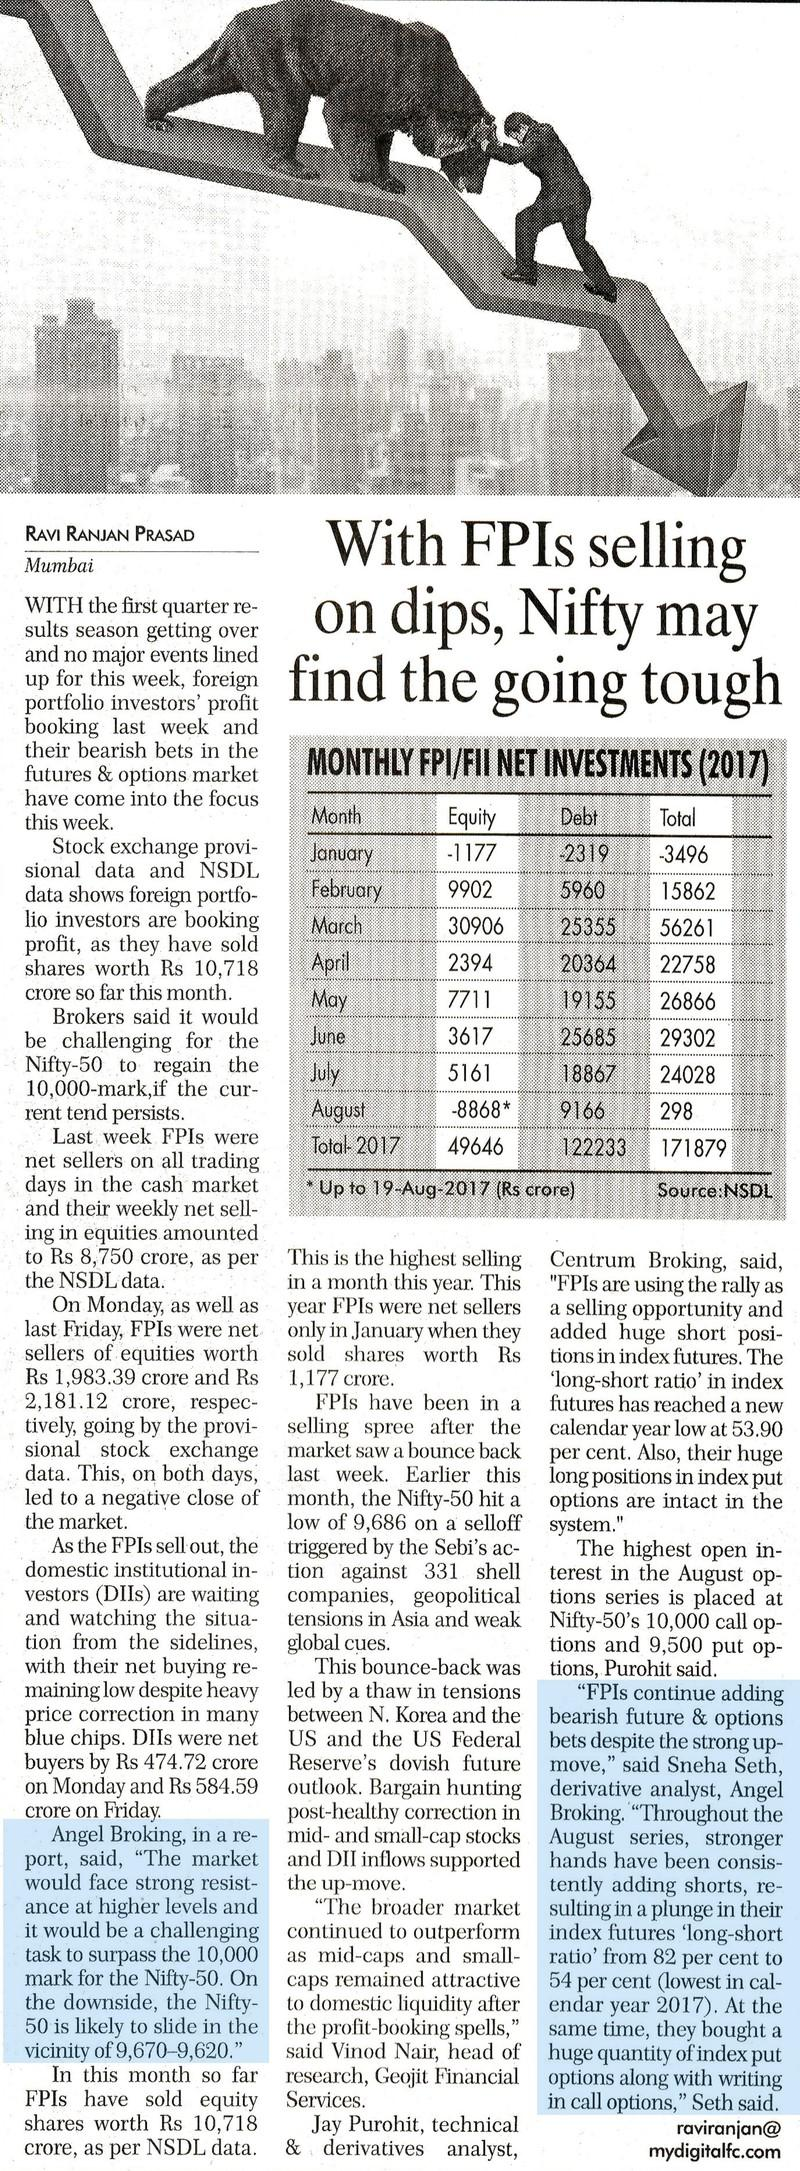 With FPIs selling on dips, Nifty may find the going tough